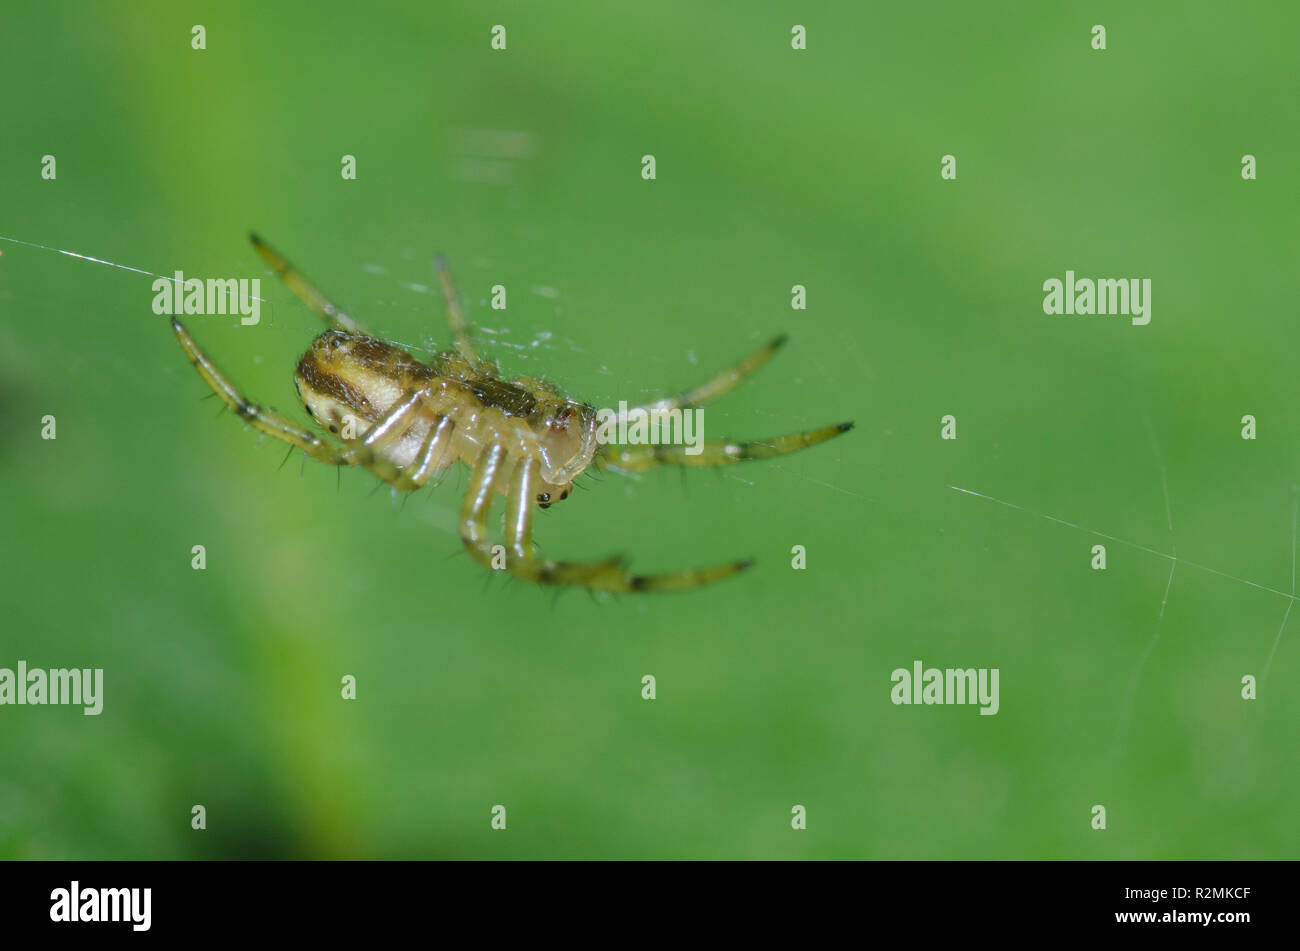 Sixspotted Orbweaver, Araniella displicata, hanging in orb web spread over surface of leaf - Stock Image